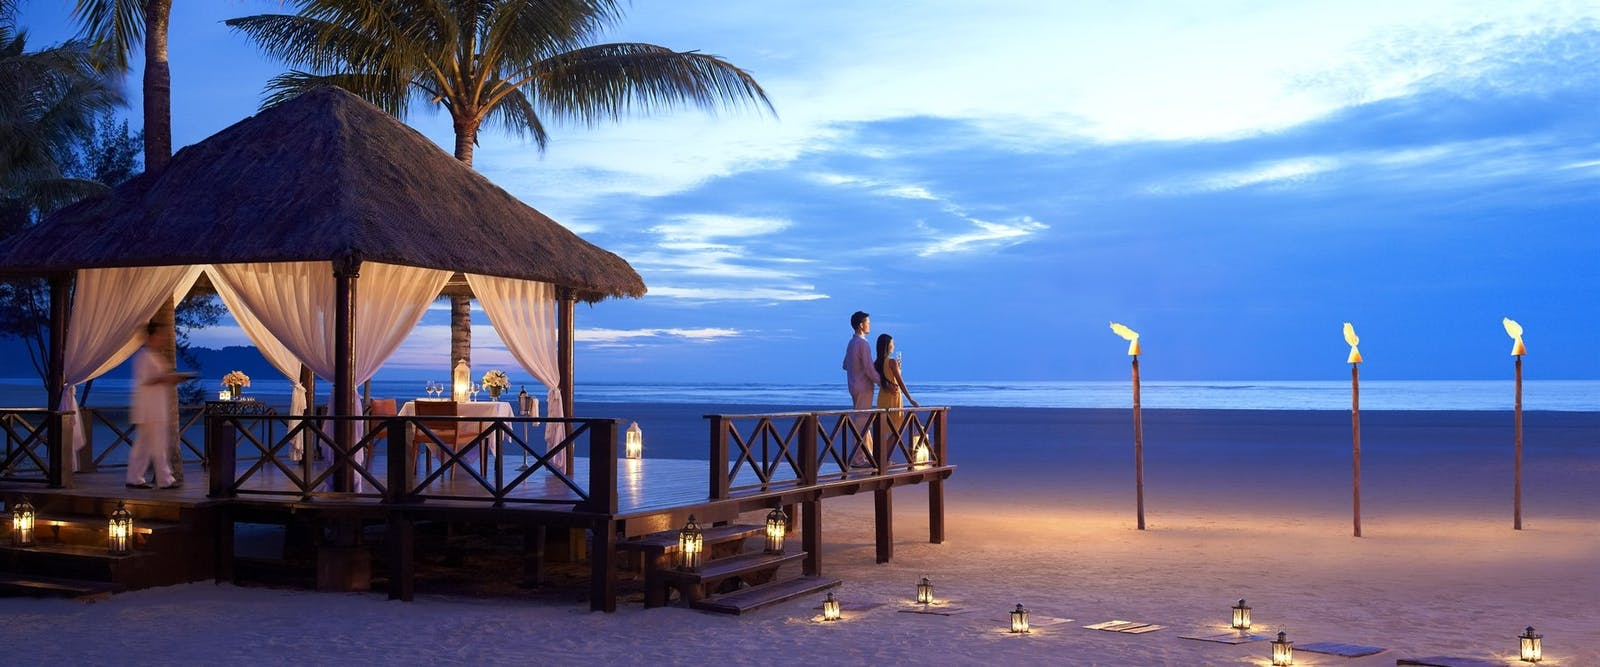 Beach gazebo at night at Shangri La Rasa Ria Resort, Borneo